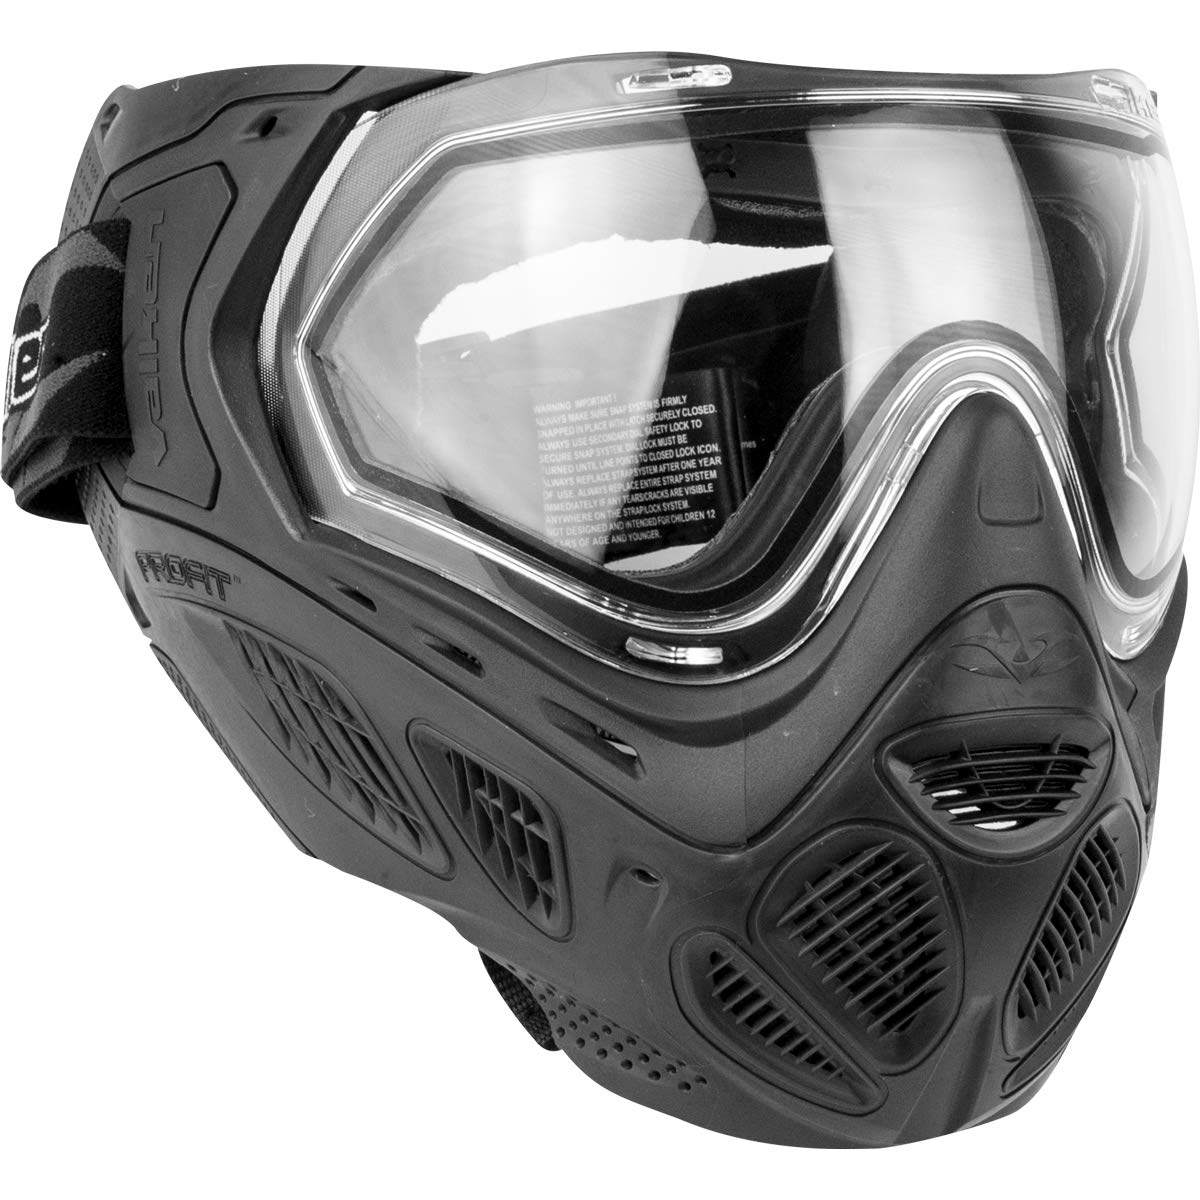 Valken Profit SC Paintball Goggle/Mask with Dual Pane Thermal Lens - Quick Change Foam - Black by Valken